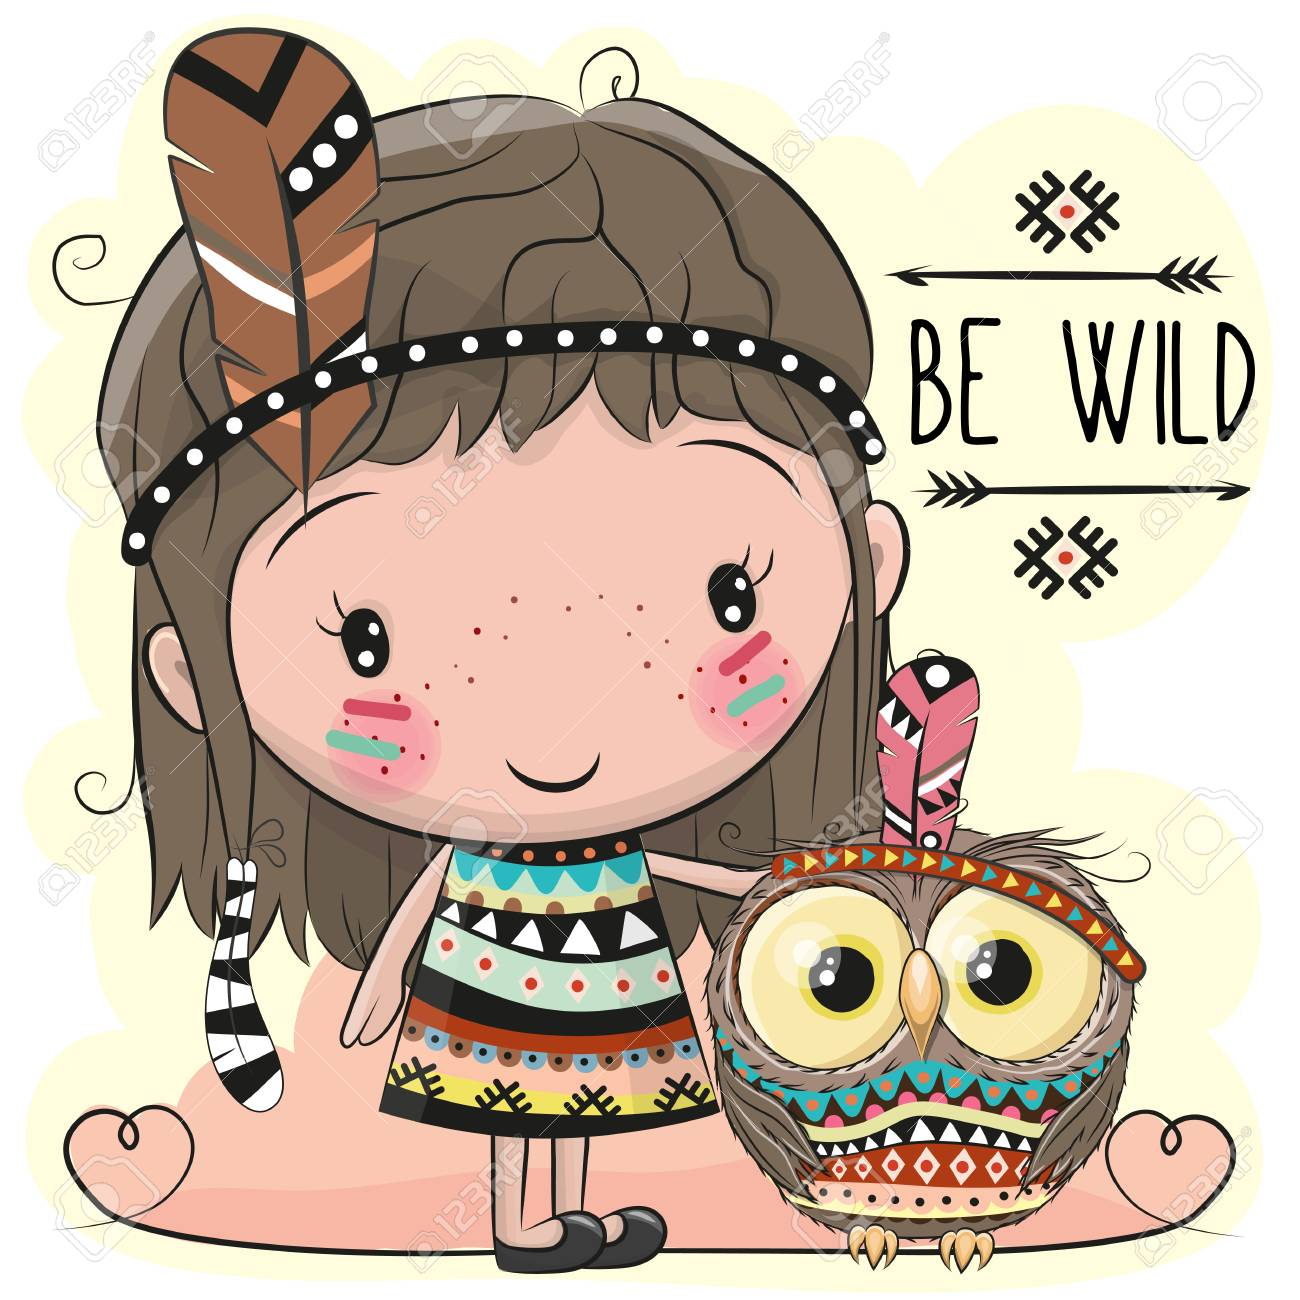 Cute Cartoon Tribal Girl And Owl With Feather Royalty Free Cliparts ... ec073120b35a